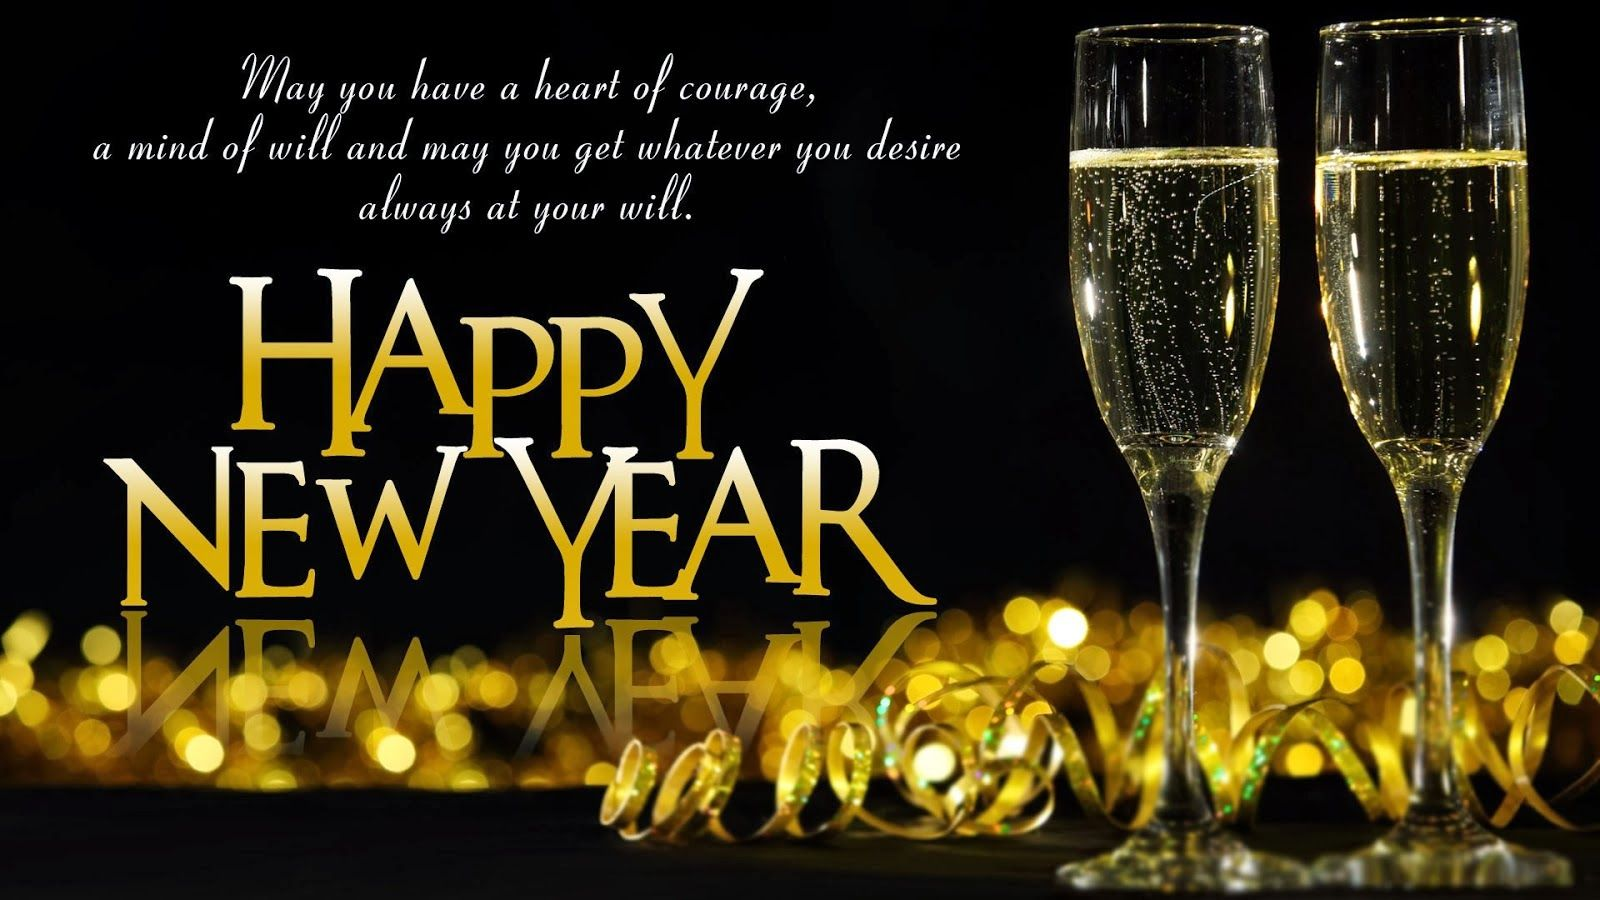 New Years Pictures Free All Wallpaper Spot New Years Eve